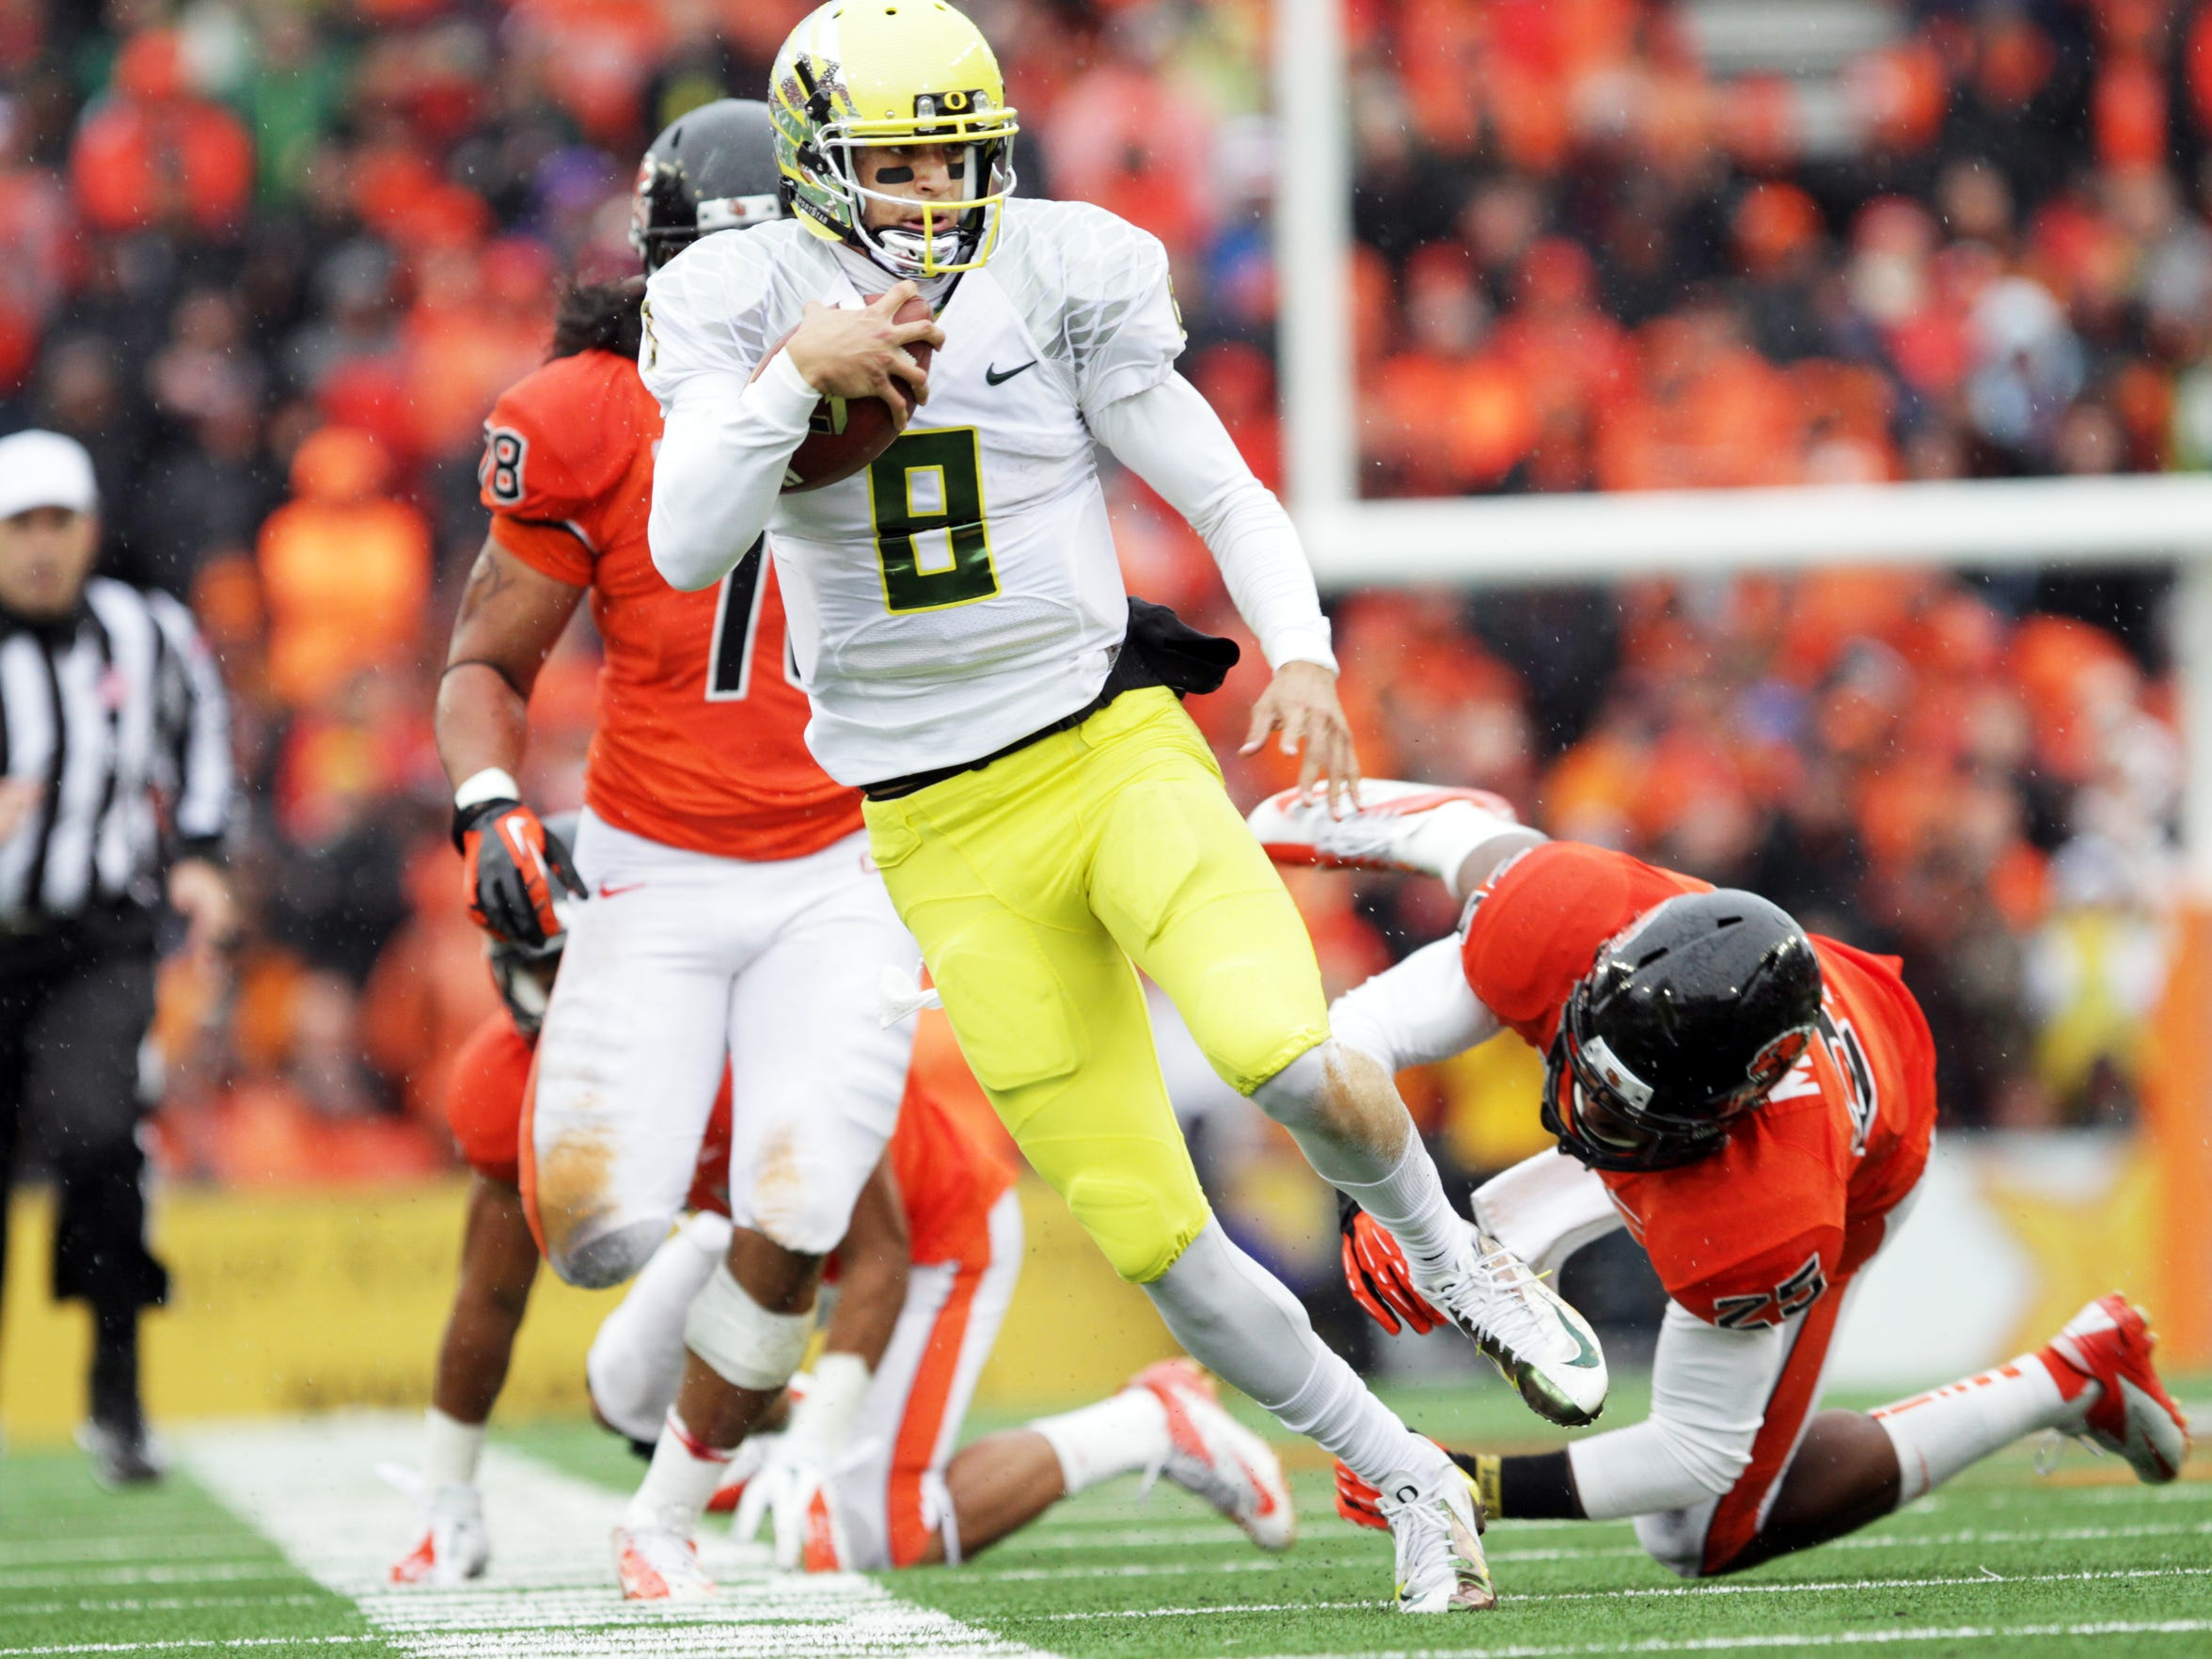 Marcus Mariota eludes trouble as the Ducks win the Civil War college football game between Oregon and Oregon State at Reser Stadium in 2012.